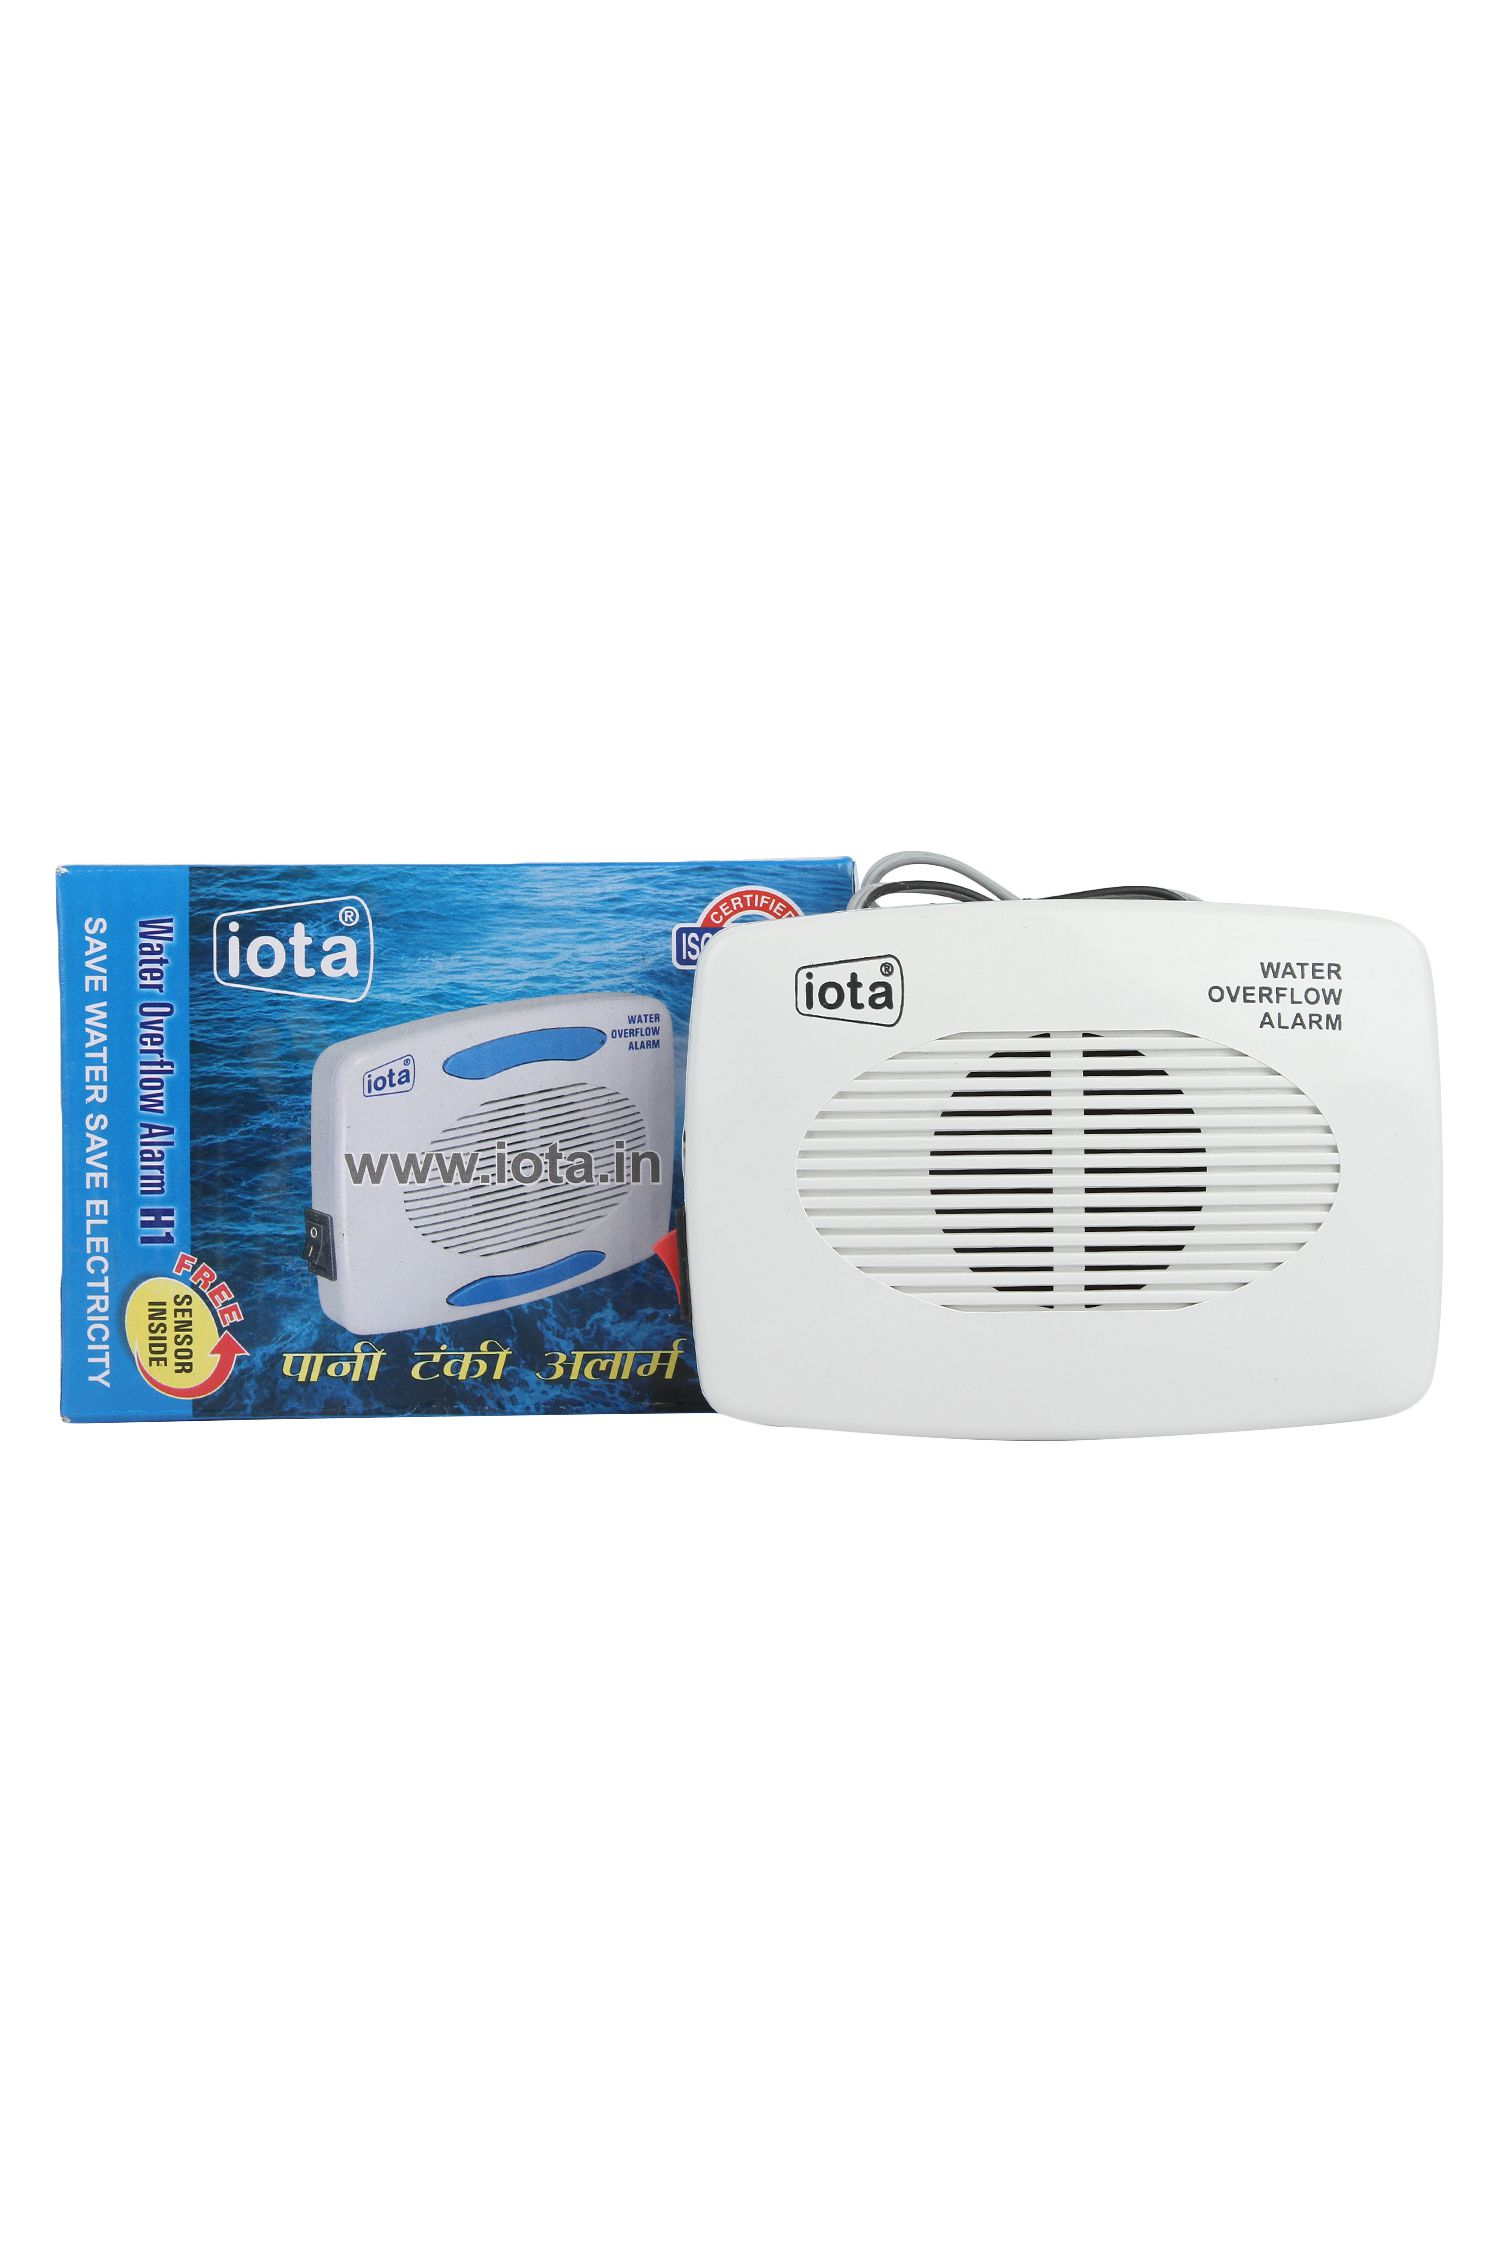 buy iota water tank overflow alarm online at low price in india